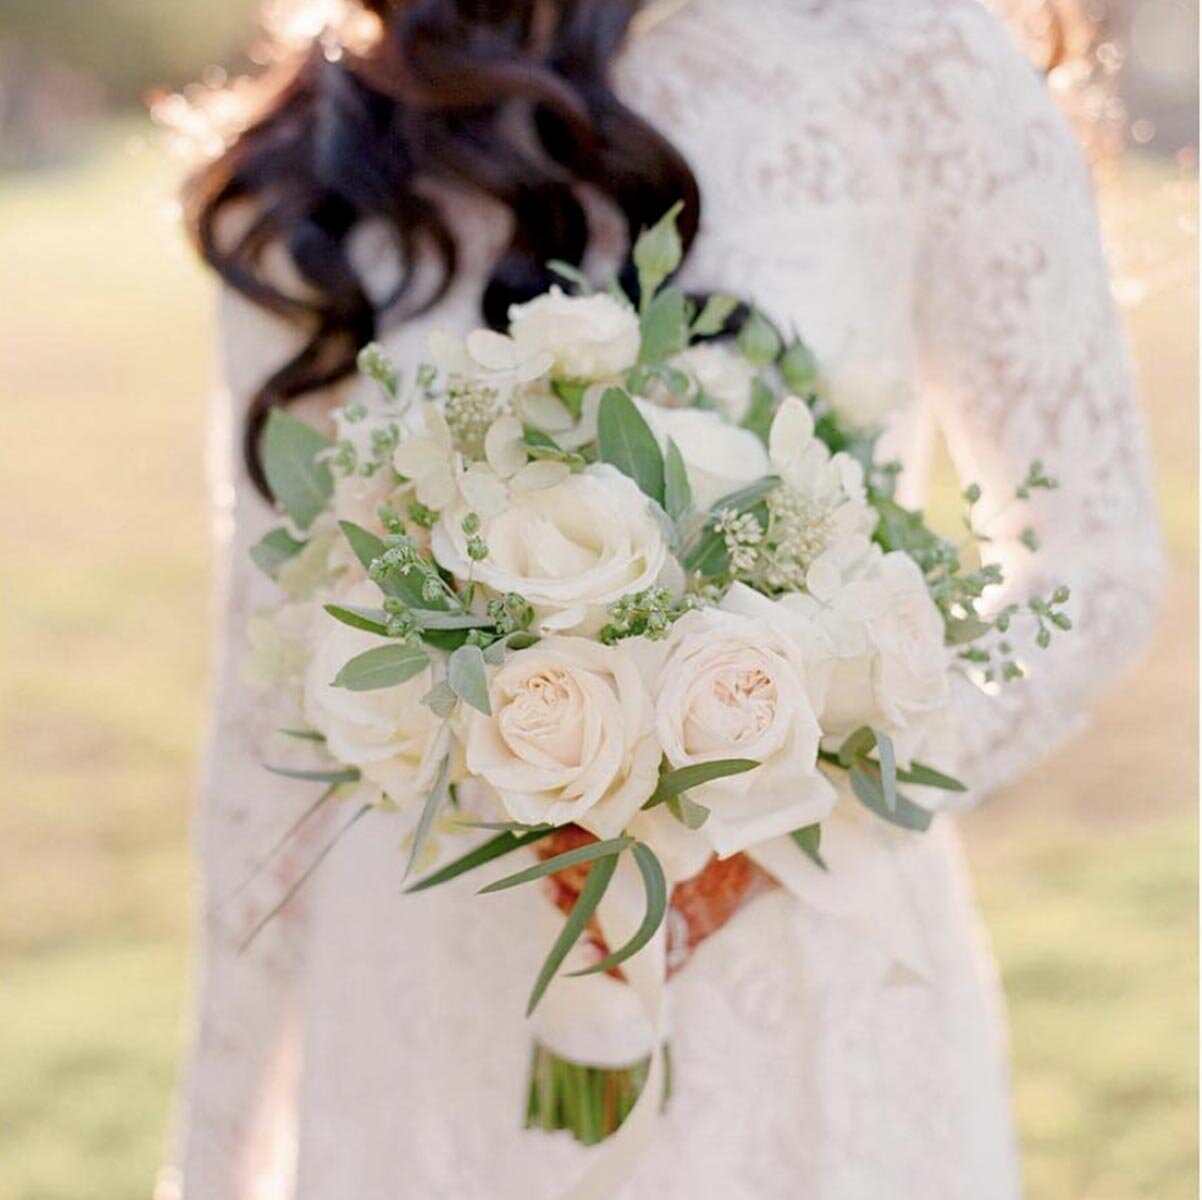 bouquet-wedding-flowers-sydney-pacakges-prices-affordable